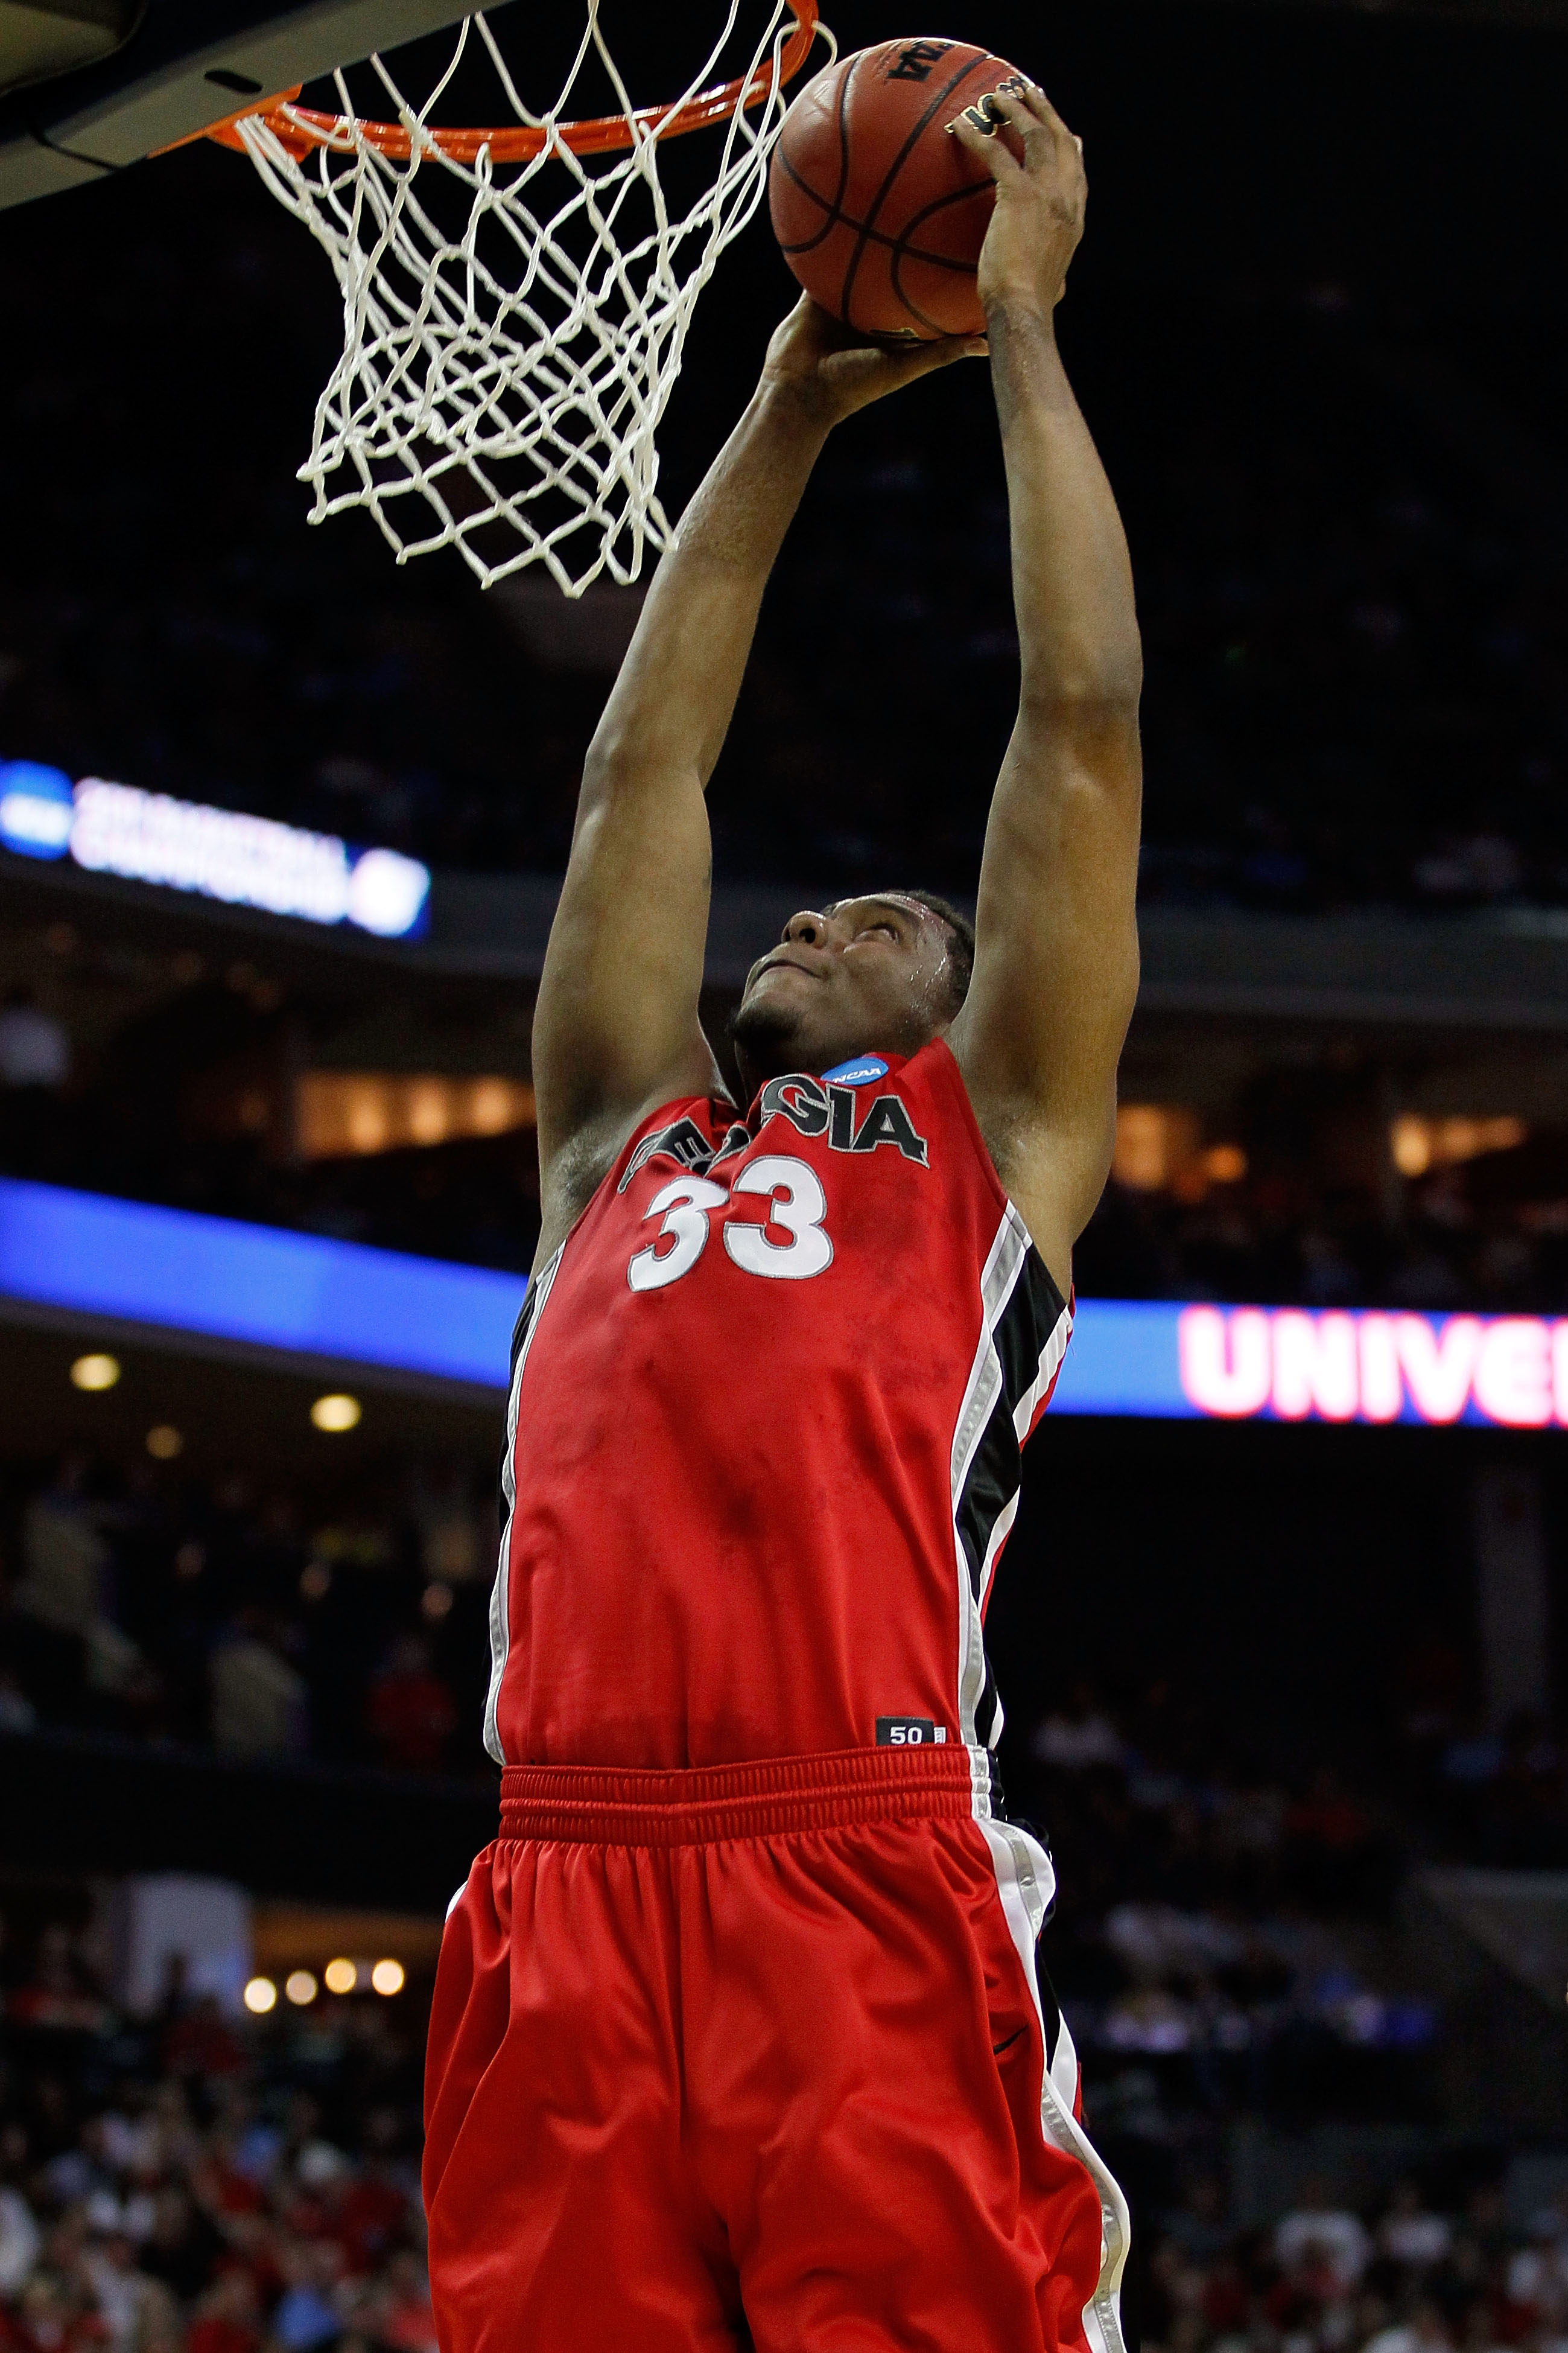 CHARLOTTE, NC - MARCH 18:  Trey Thompkins #33 of the Georgia Bulldogs dunks the ball in the first half while taking on the Washington Huskies during the second round of the 2011 NCAA men's basketball tournament at Time Warner Cable Arena on March 18, 2011